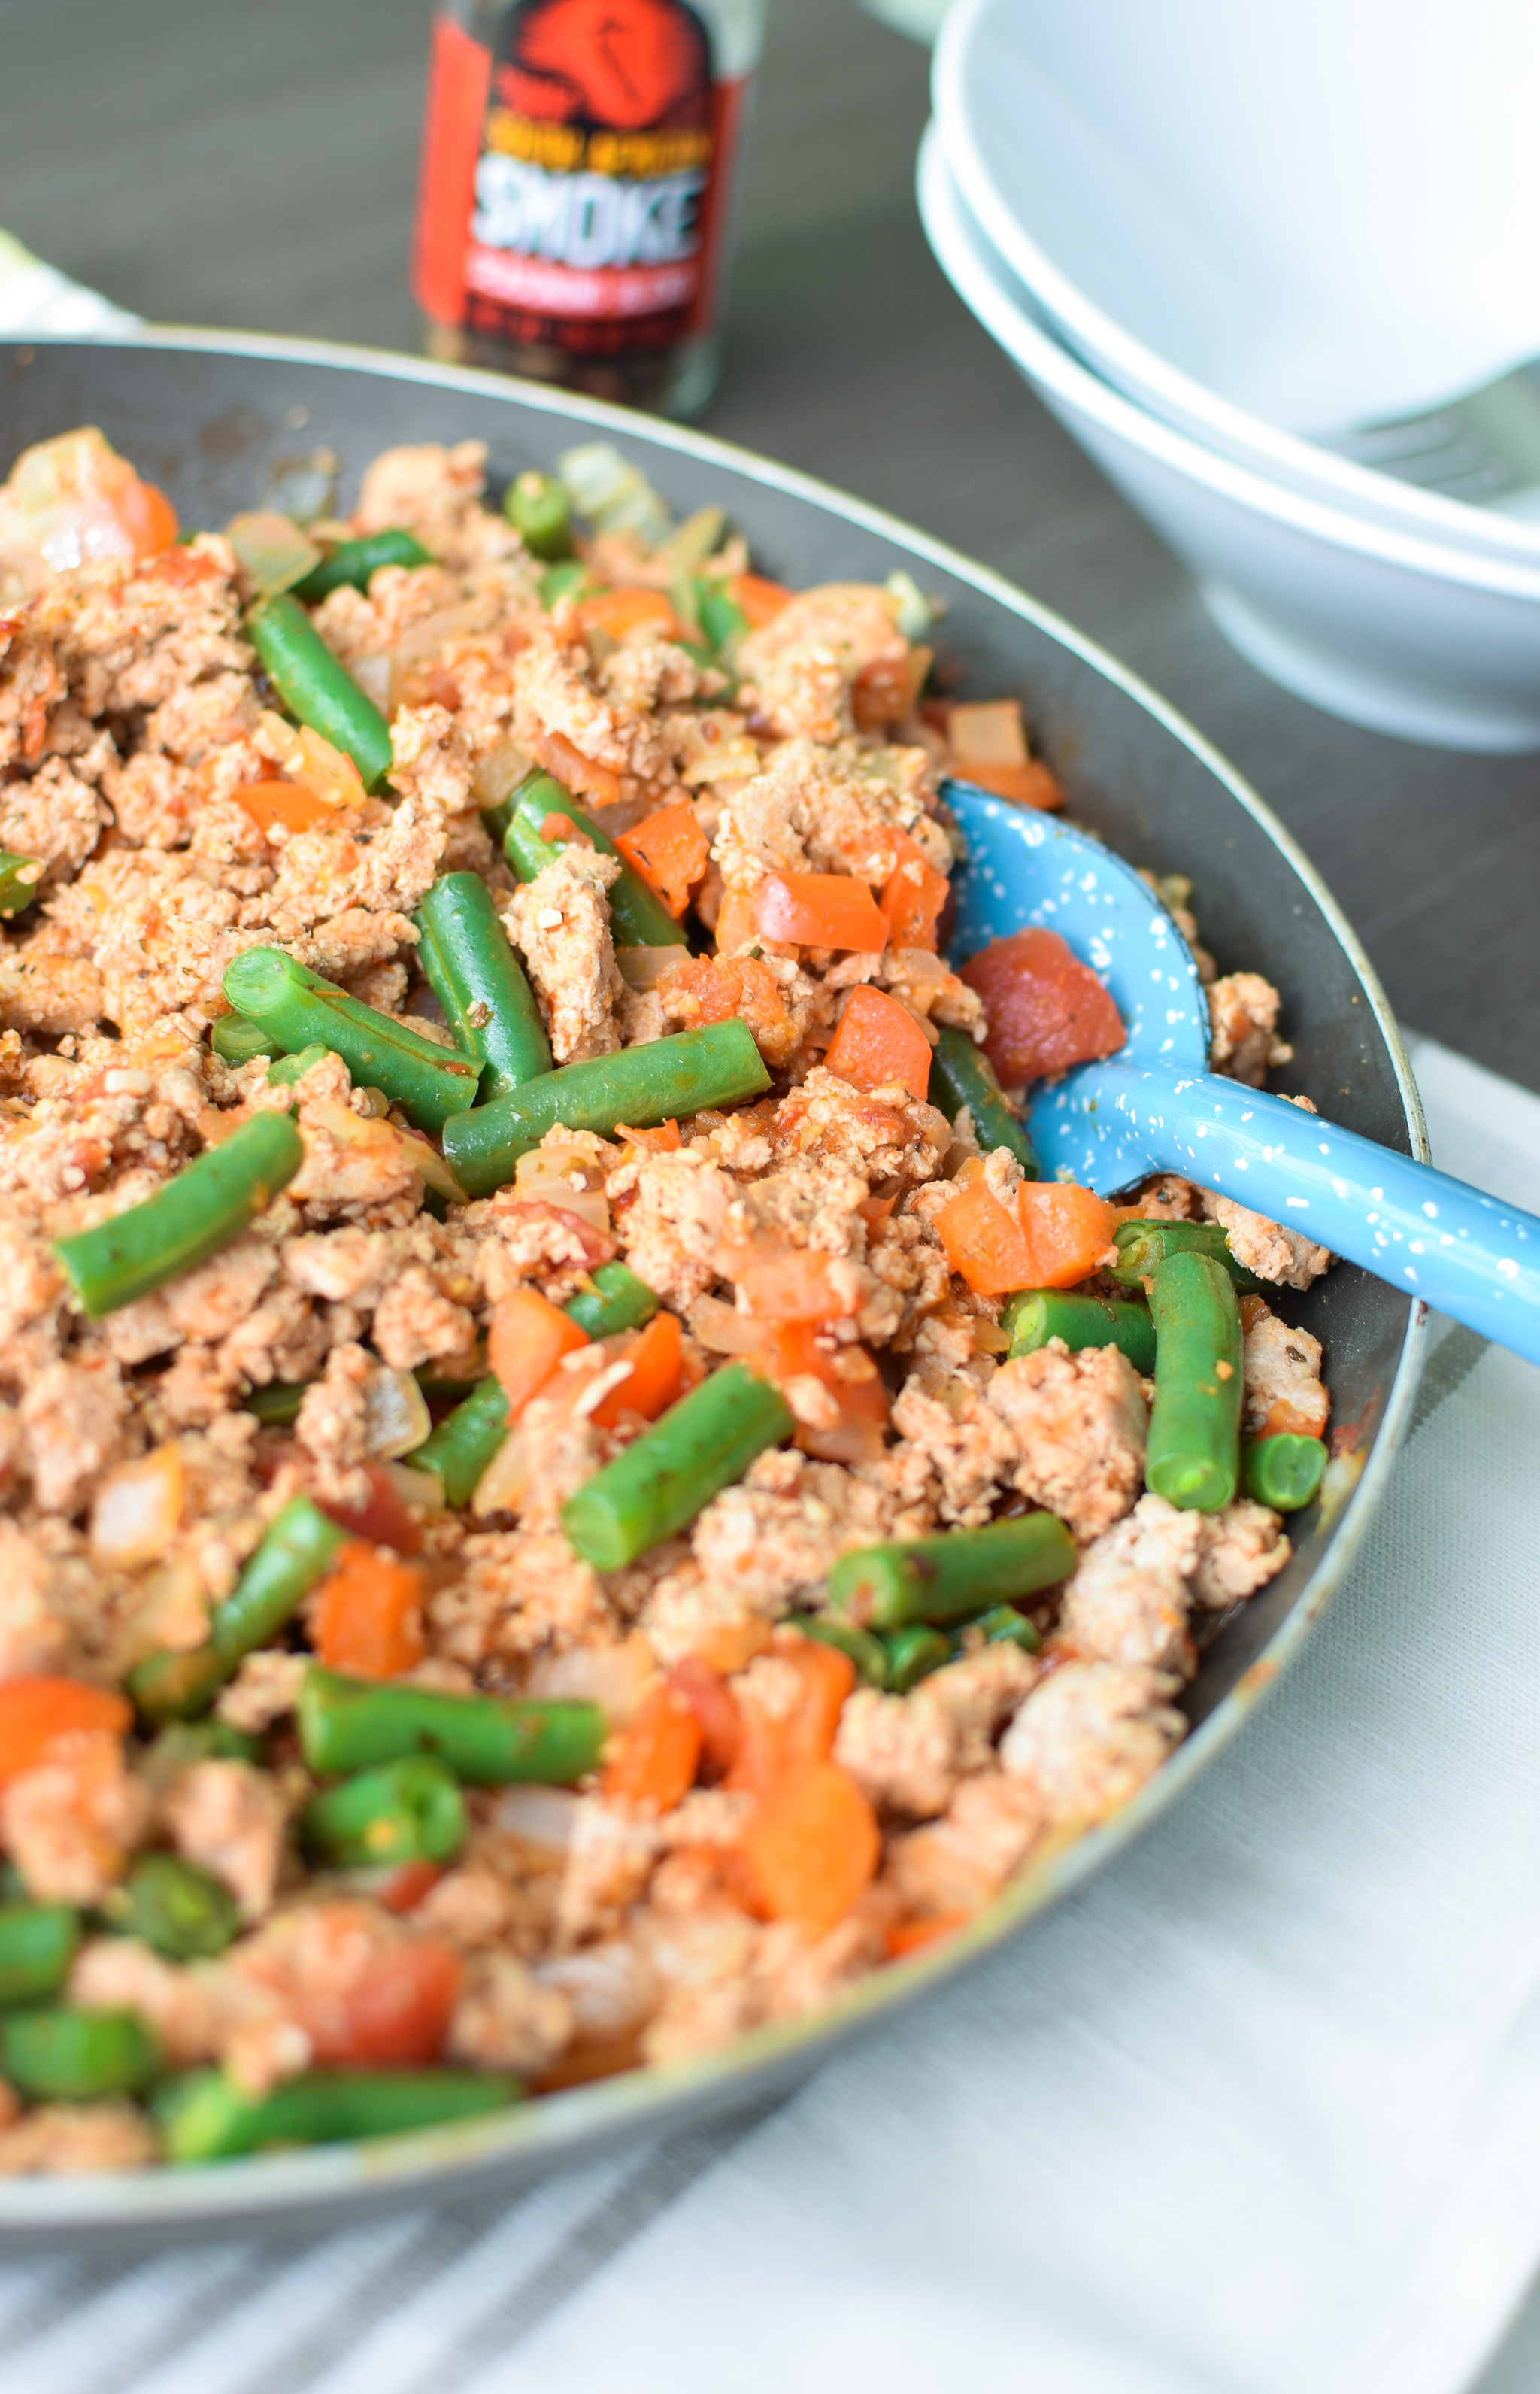 Check out this main dish recipe for the Smokey Green Bean Turkey Skillet! Smokey goodness with a hint of kick, and fresh bell pepper and green beans! YUM. - ProjectMealPlan.com